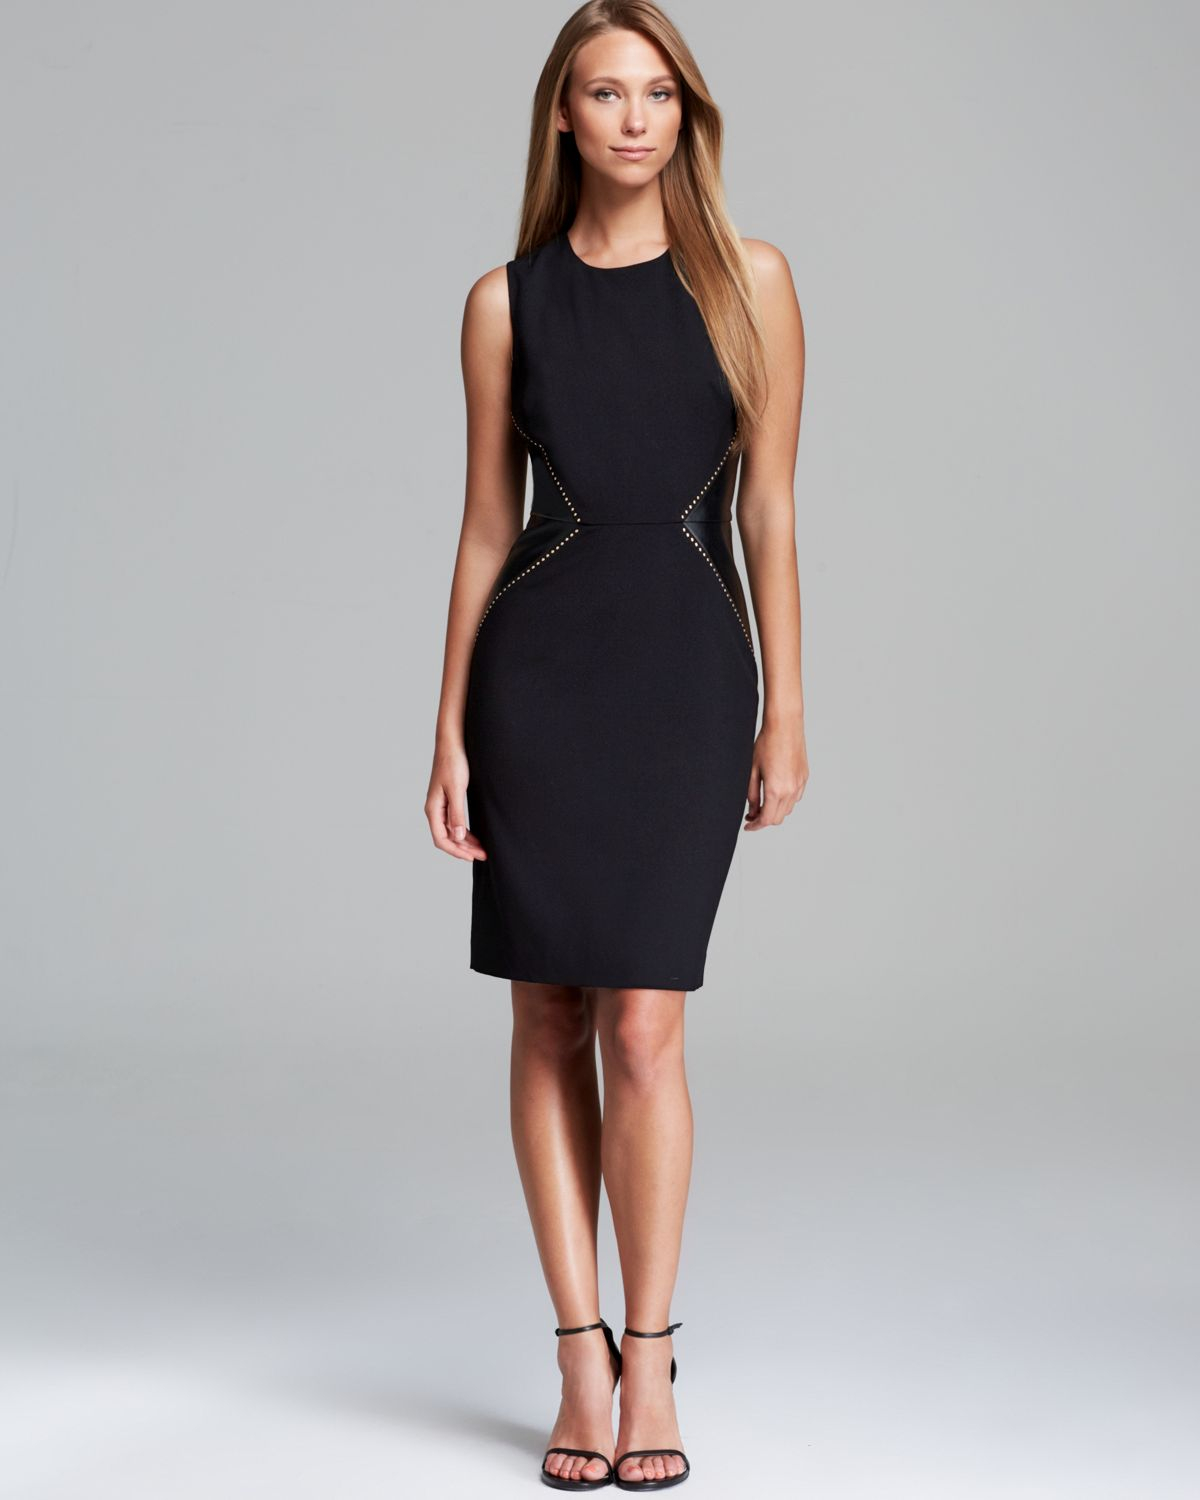 Calvin Klein Formal Dresses Dress Foto And Picture